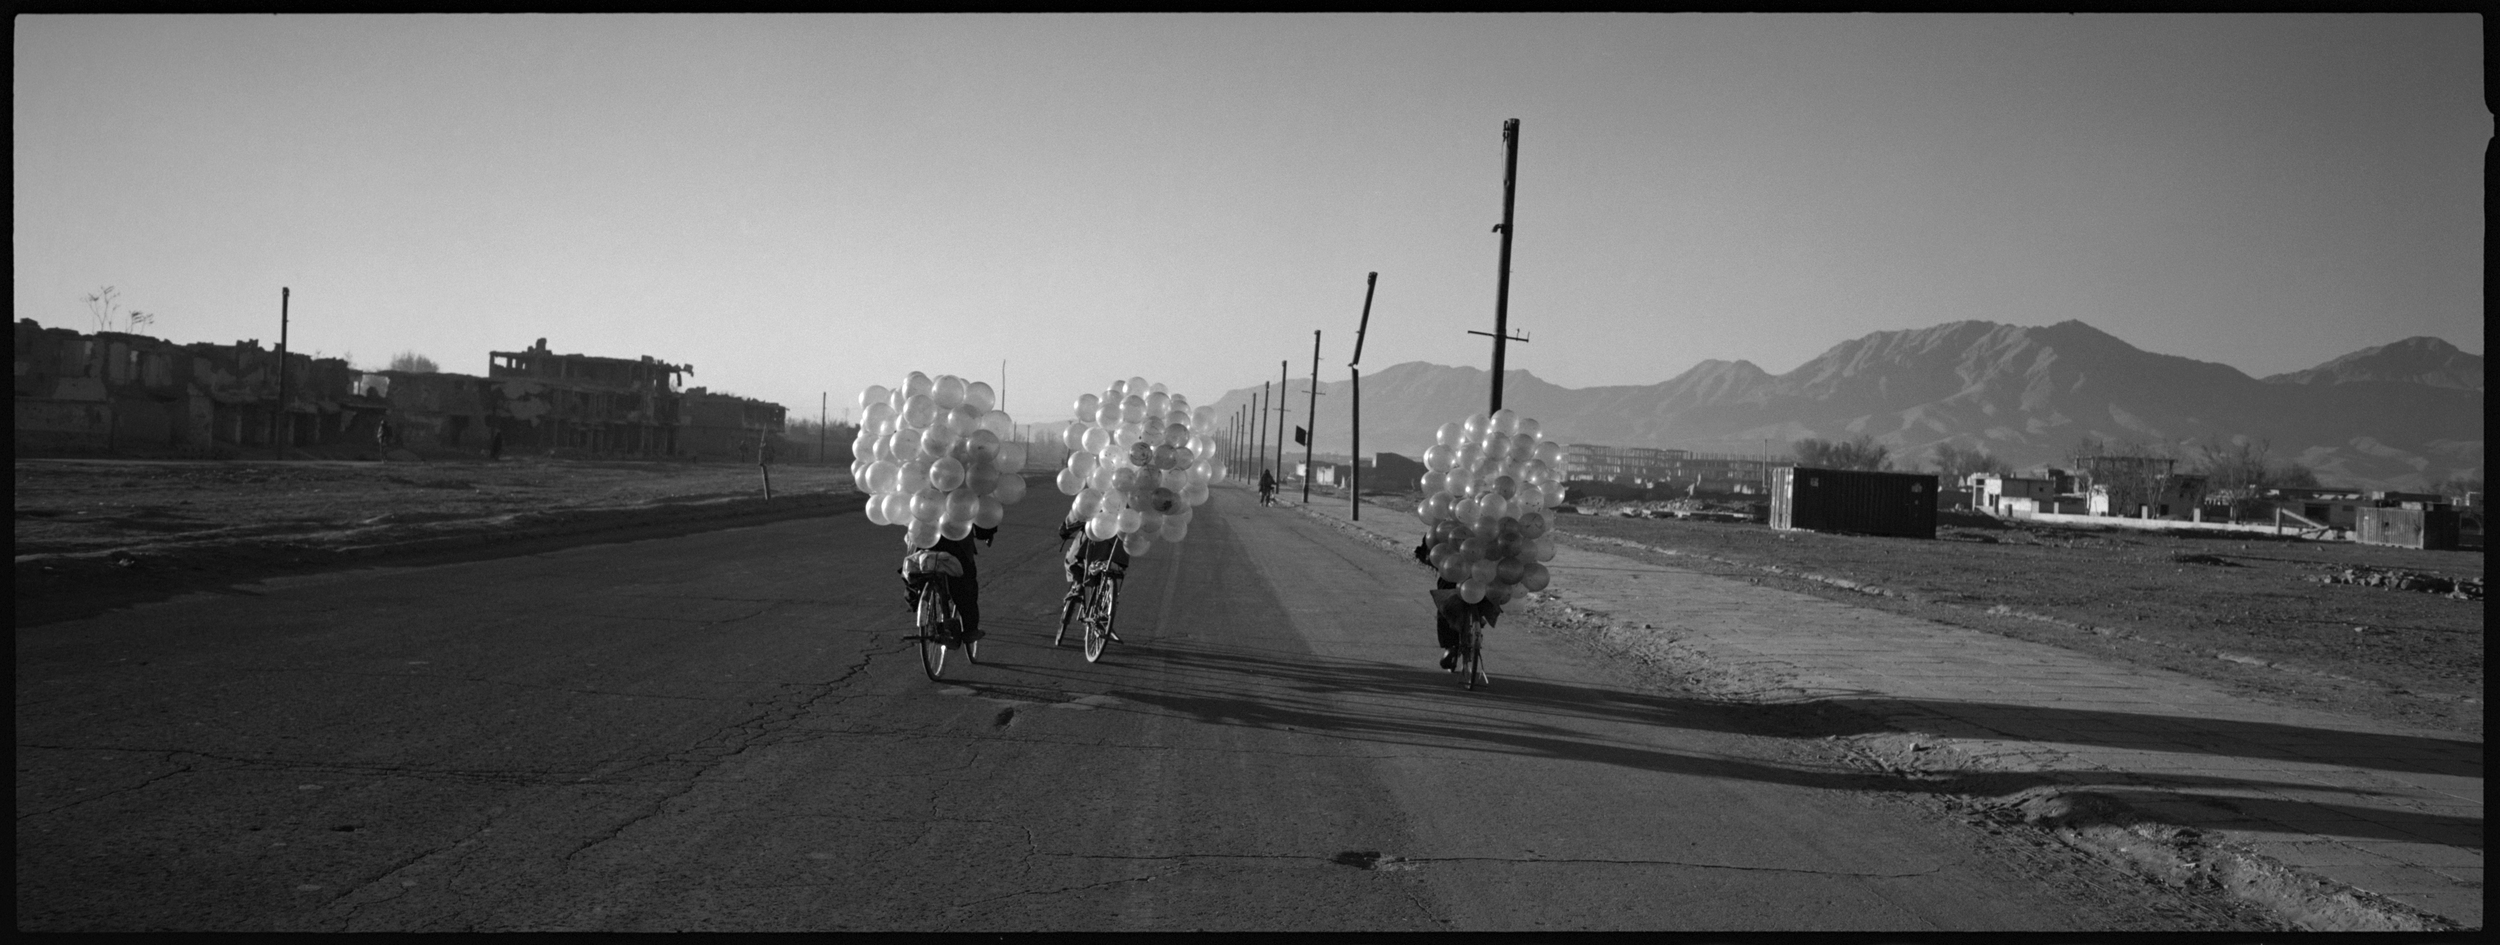 Cyclists selling balloons in one of the destroyed areas of Kabul. During the Taliban regime balloons were banned.